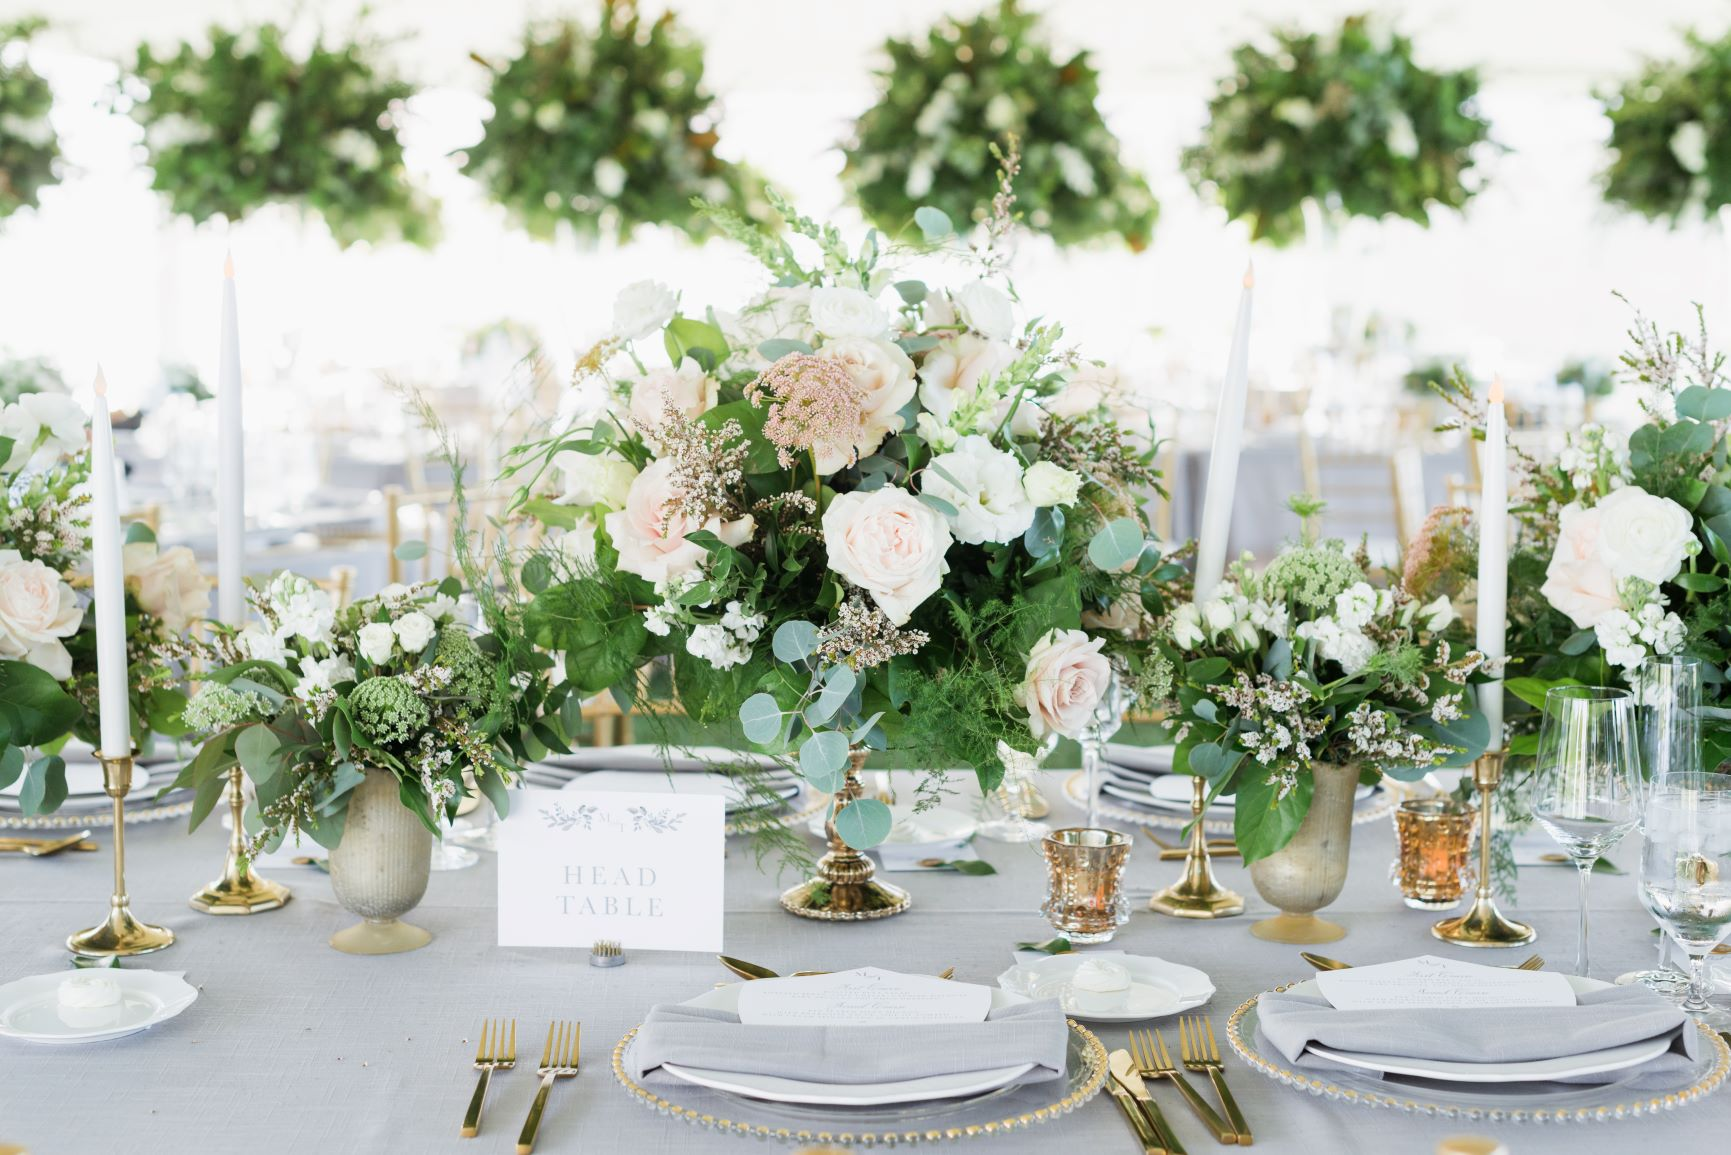 Centerpiece with white flowers